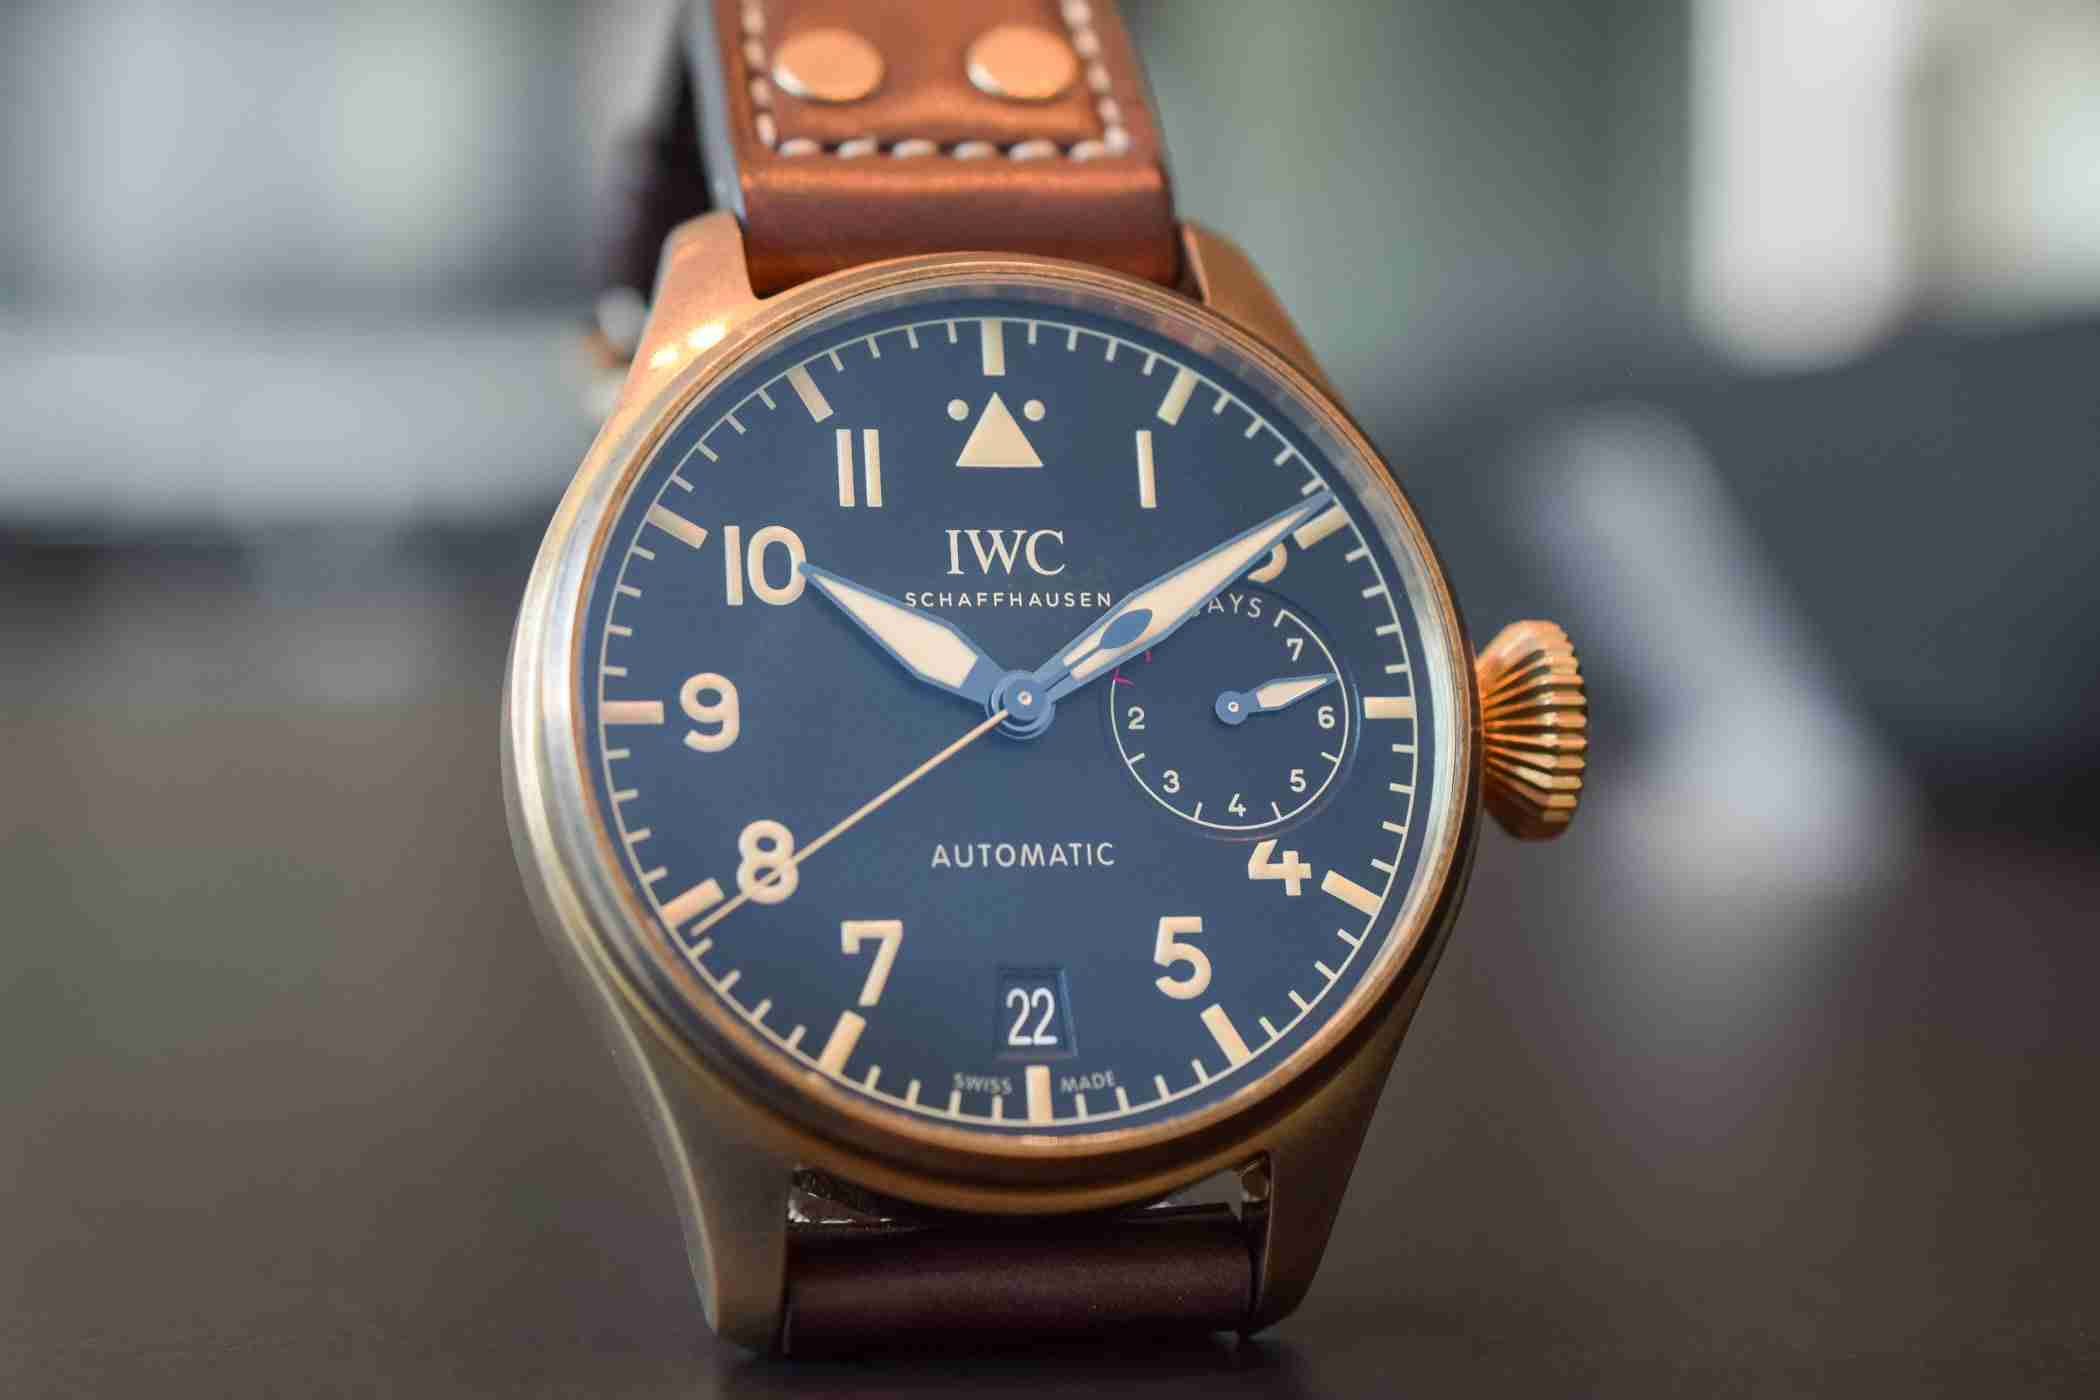 IW501005 Swiss IWC Big Pilot's Heritage Automatic Bronze Replica Watch Guide